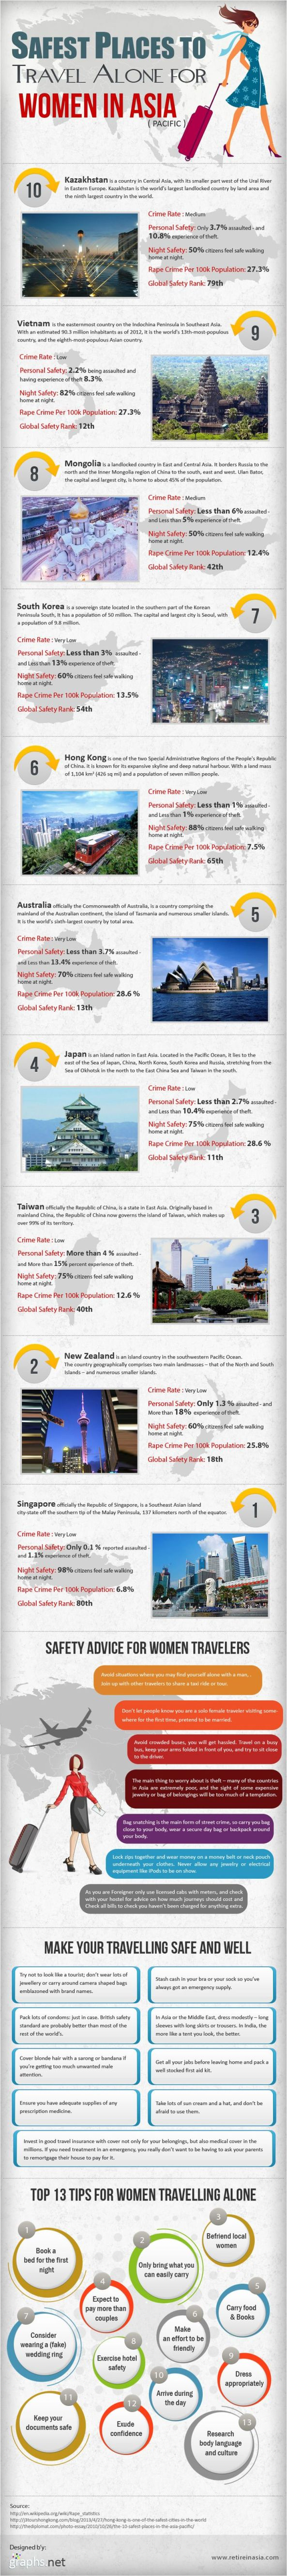 Safest Places for Women to Travel In Asia